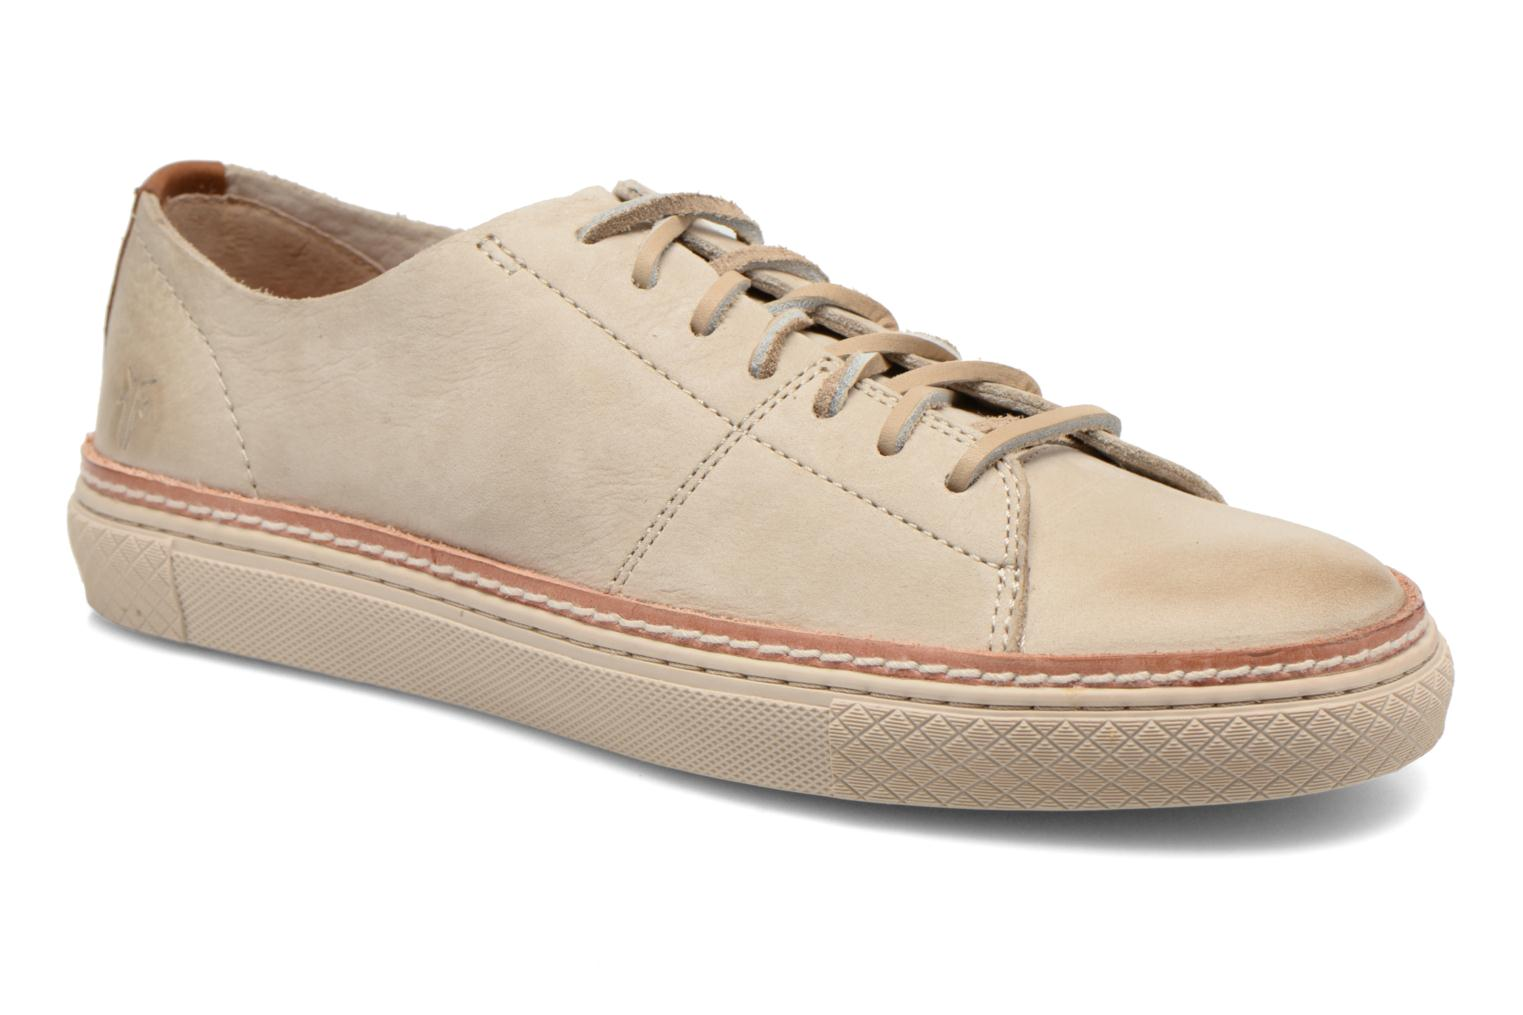 sneakers-gates-low-lace-by-frye